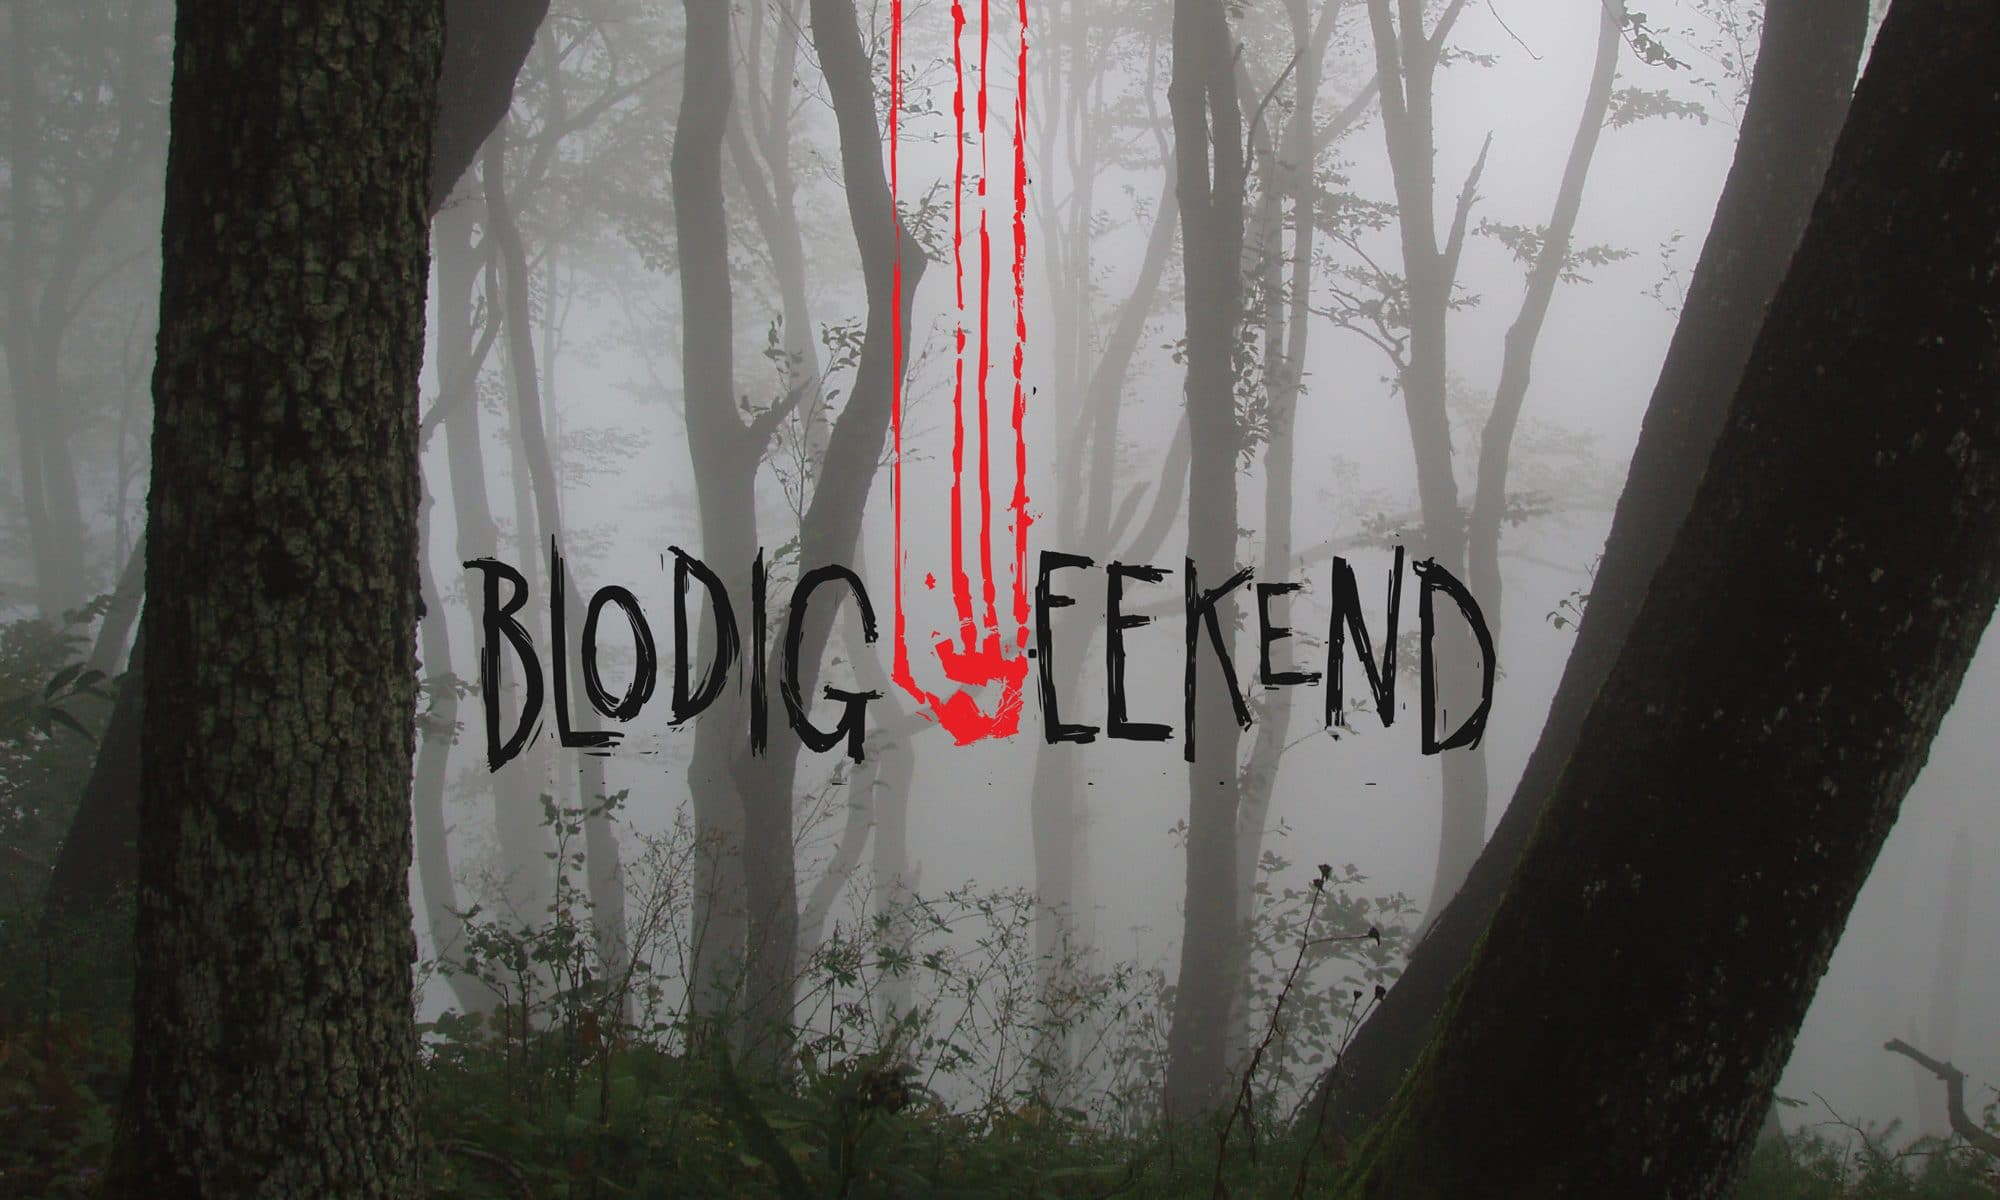 Blodig weekend 2017 programmet